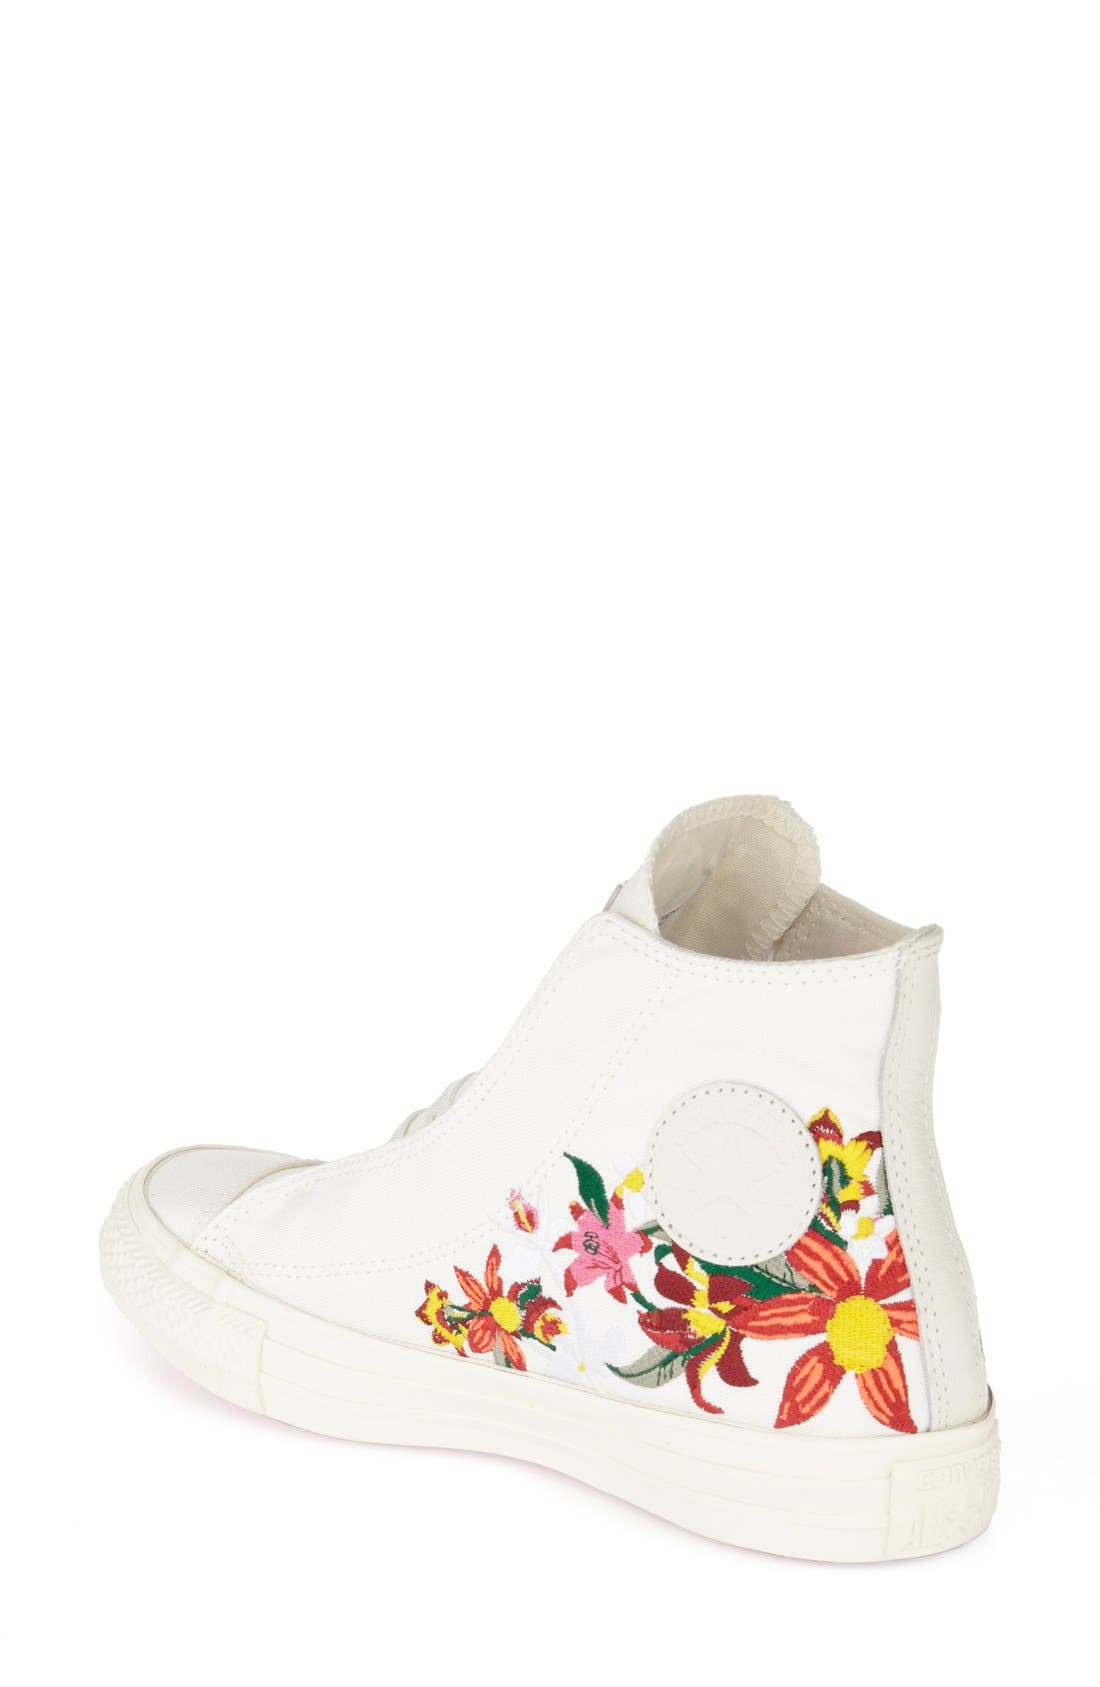 Chuck Taylor<sup>®</sup> All Star<sup>®</sup> 'Patbo' Floral High Top Sneaker,                             Alternate thumbnail 3, color,                             100